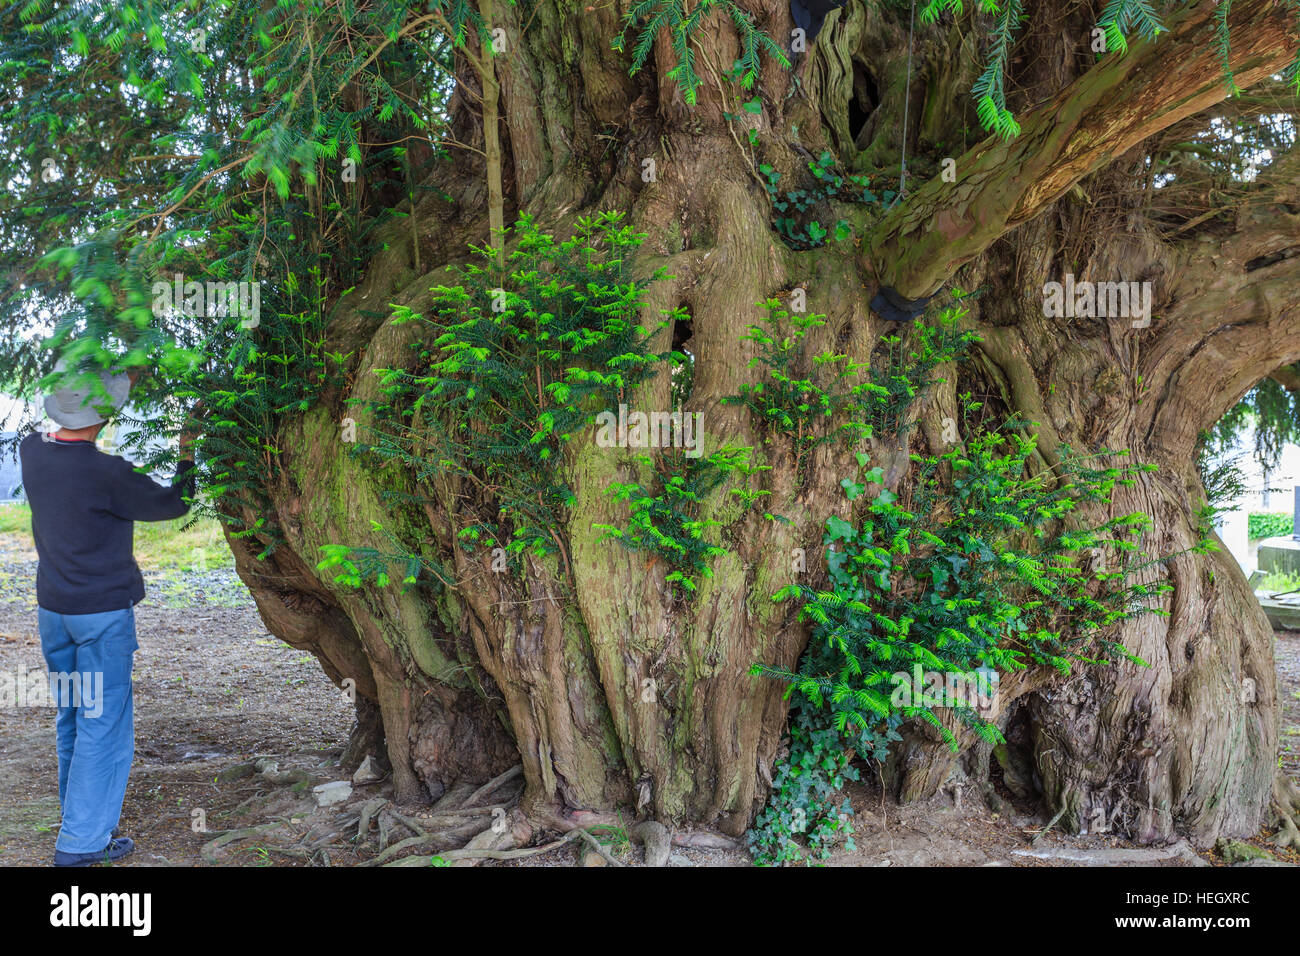 Yew millennium, Taxus baccata, France, Calvados, Estry - Stock Image